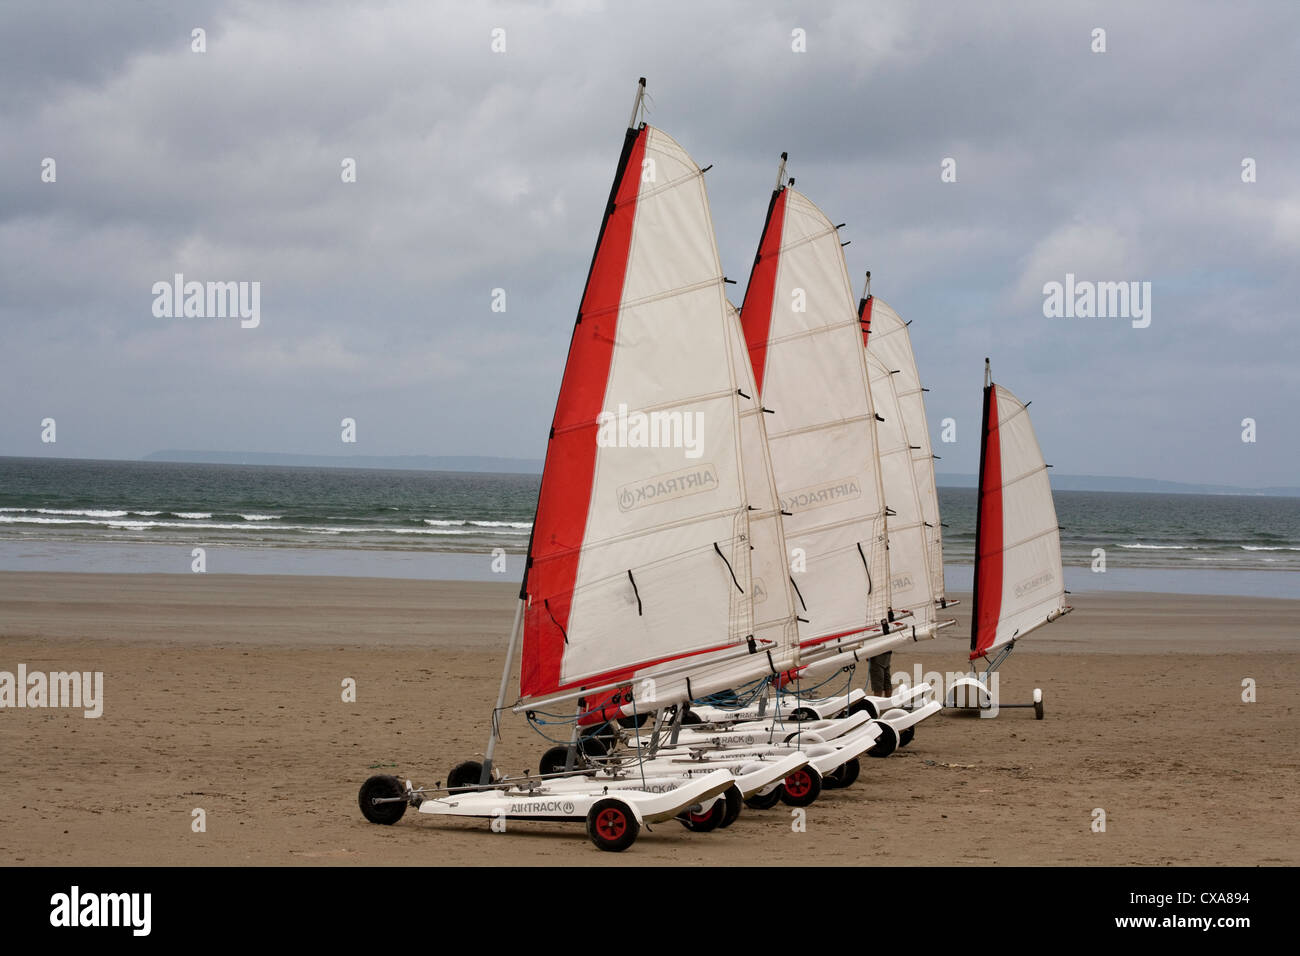 Sand yachts in Brittany beach France Stock Photo